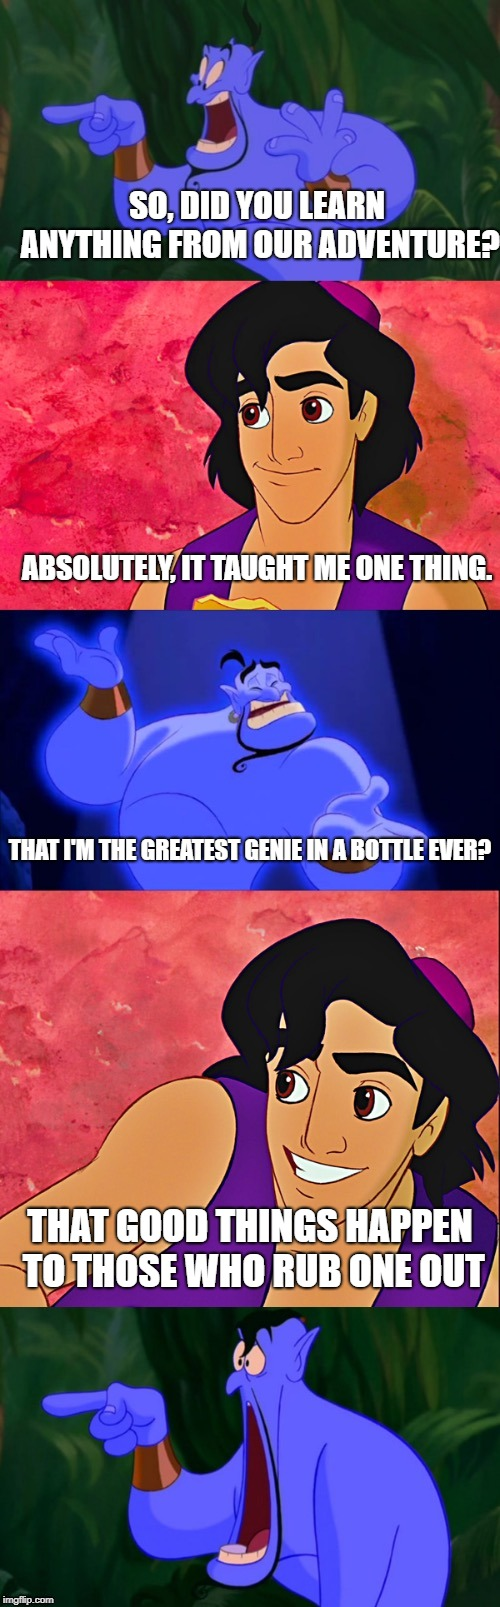 Double Entendre Aladdin |  SO, DID YOU LEARN ANYTHING FROM OUR ADVENTURE? ABSOLUTELY, IT TAUGHT ME ONE THING. THAT I'M THE GREATEST GENIE IN A BOTTLE EVER? THAT GOOD THINGS HAPPEN TO THOSE WHO RUB ONE OUT | image tagged in aladdin and the genie,memes,bad pun,that would be great | made w/ Imgflip meme maker